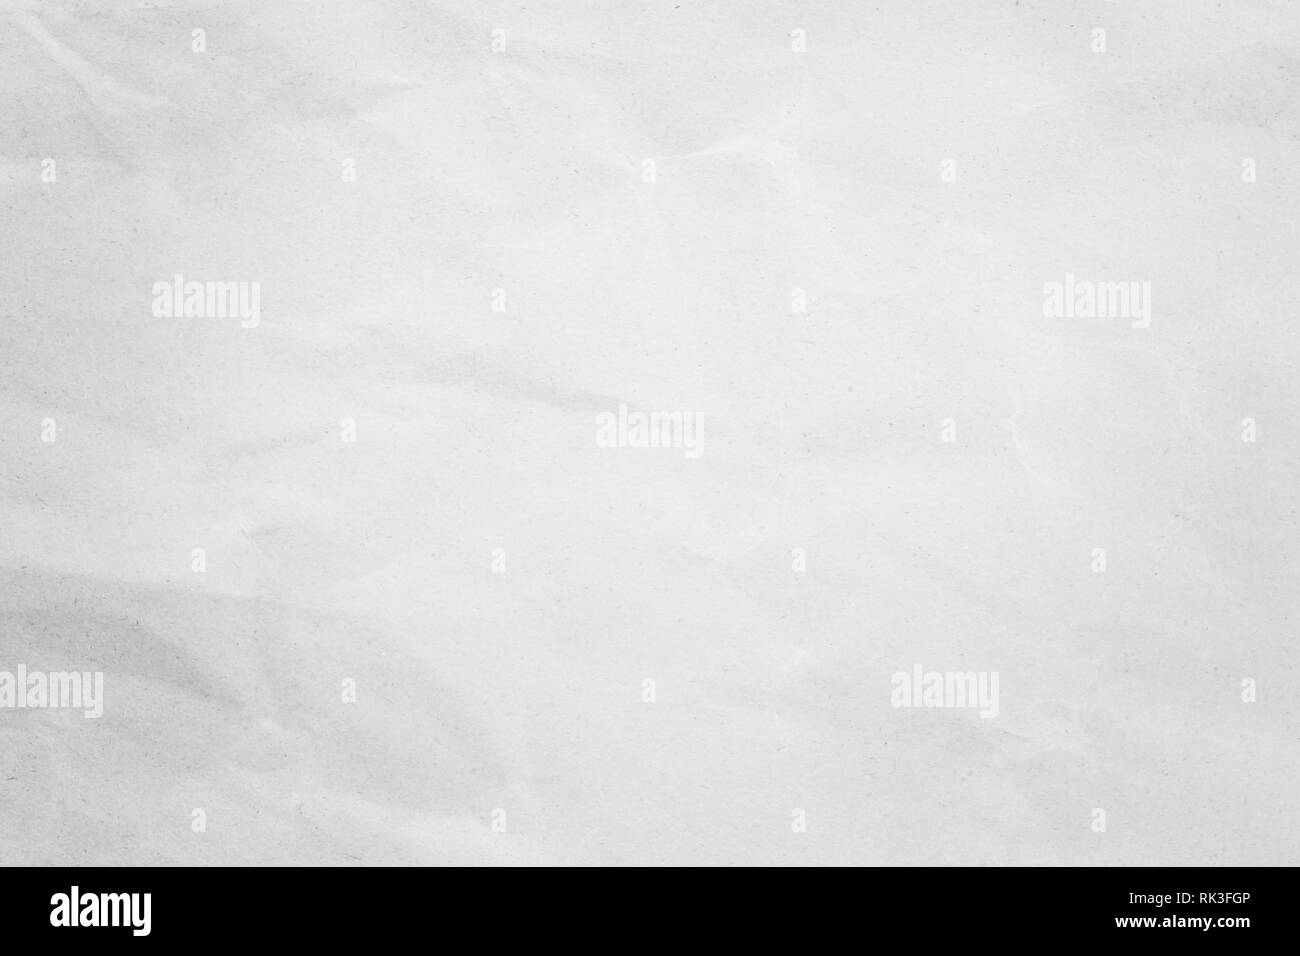 White background paper, crumpled texture and watercolor. Old vintage page with a glowing center and grunge vignette. - Stock Image